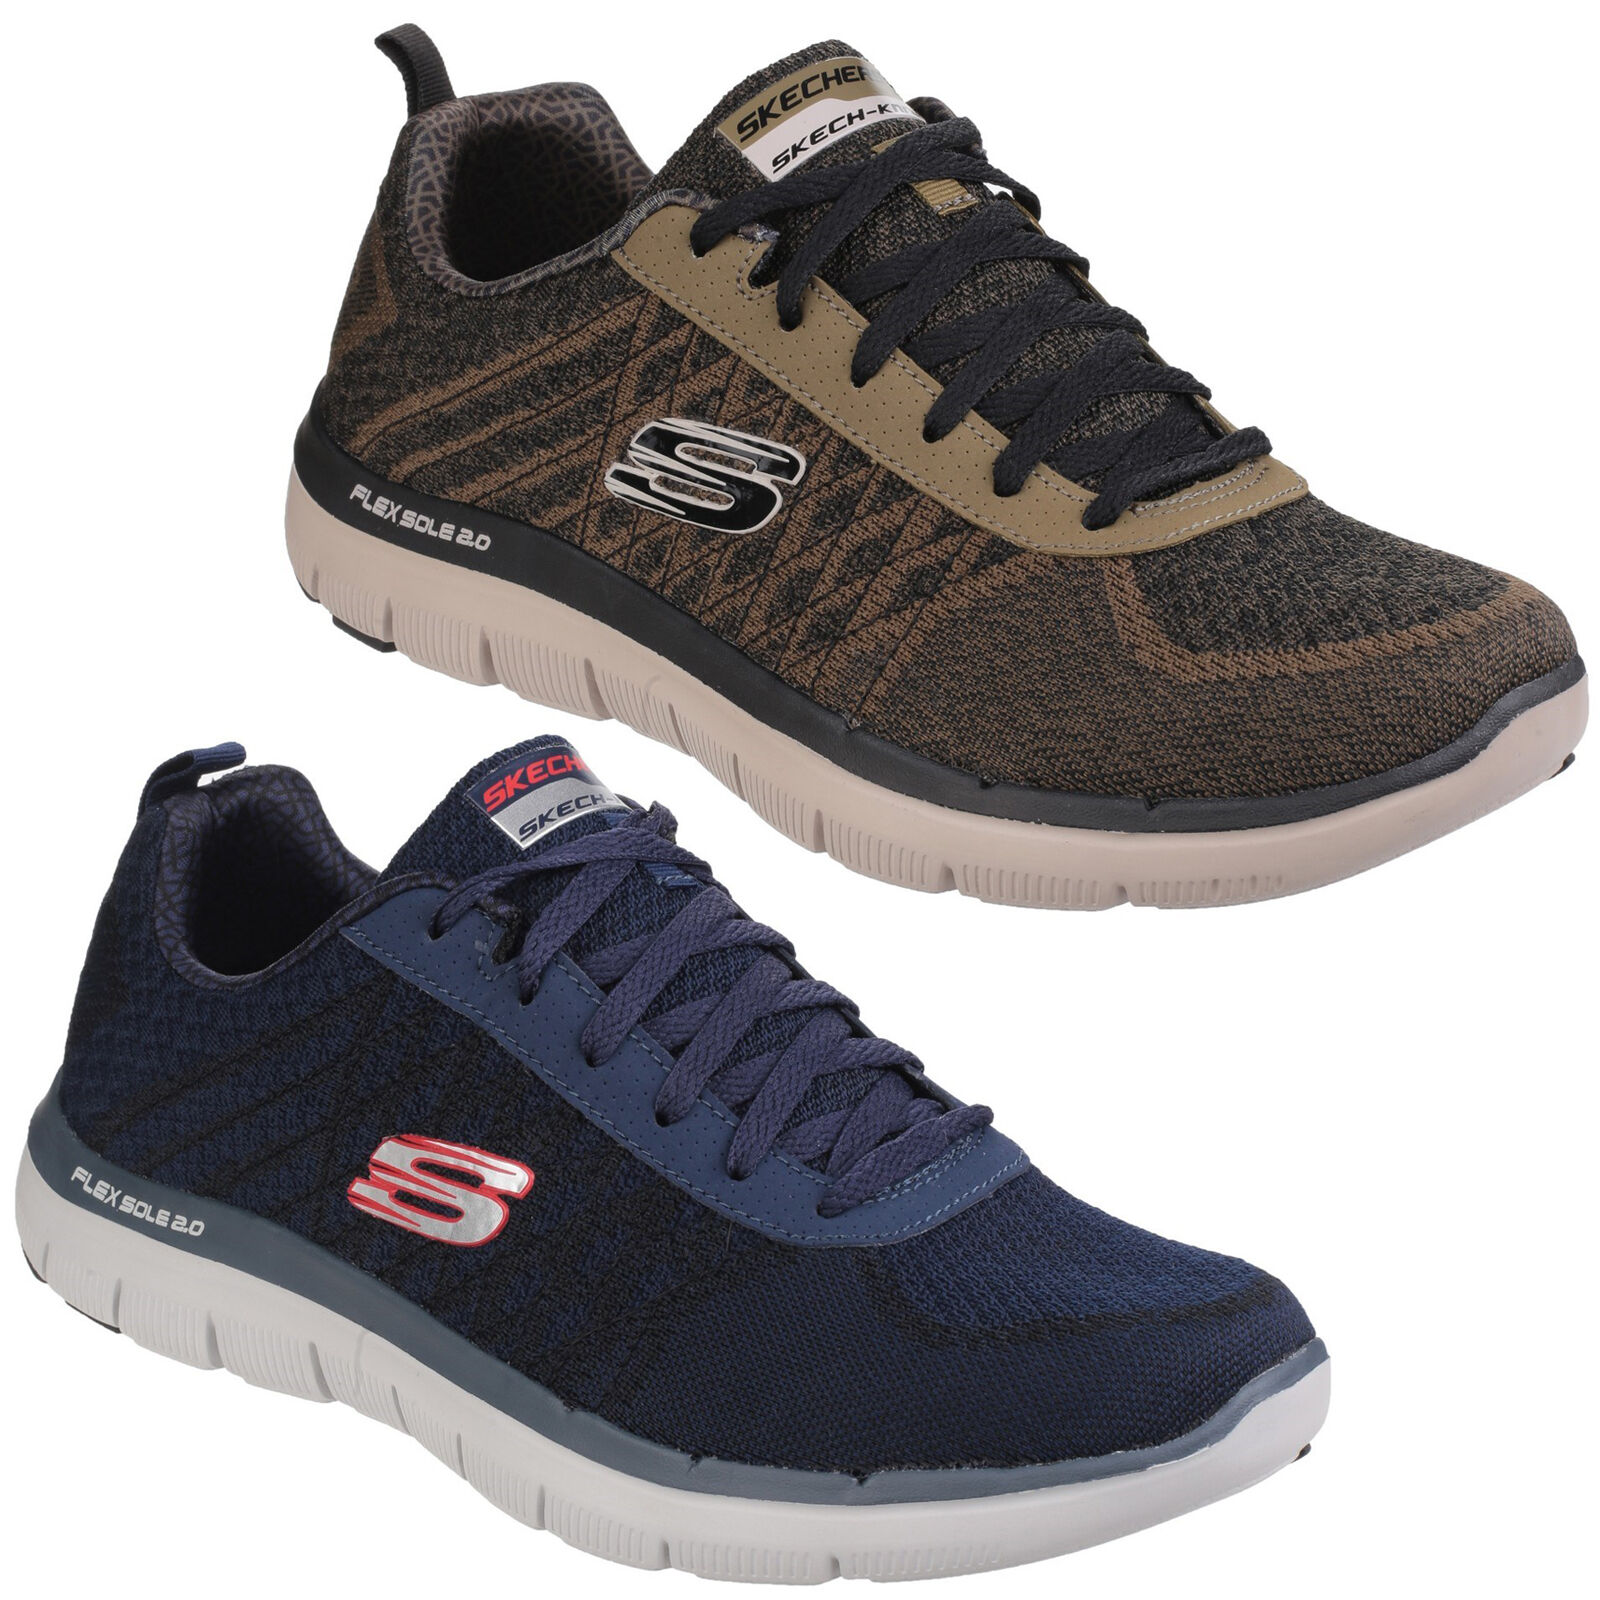 Skechers Flex Advantage 2.0 golden Point Mens Athletic Trainers shoes UK6-12